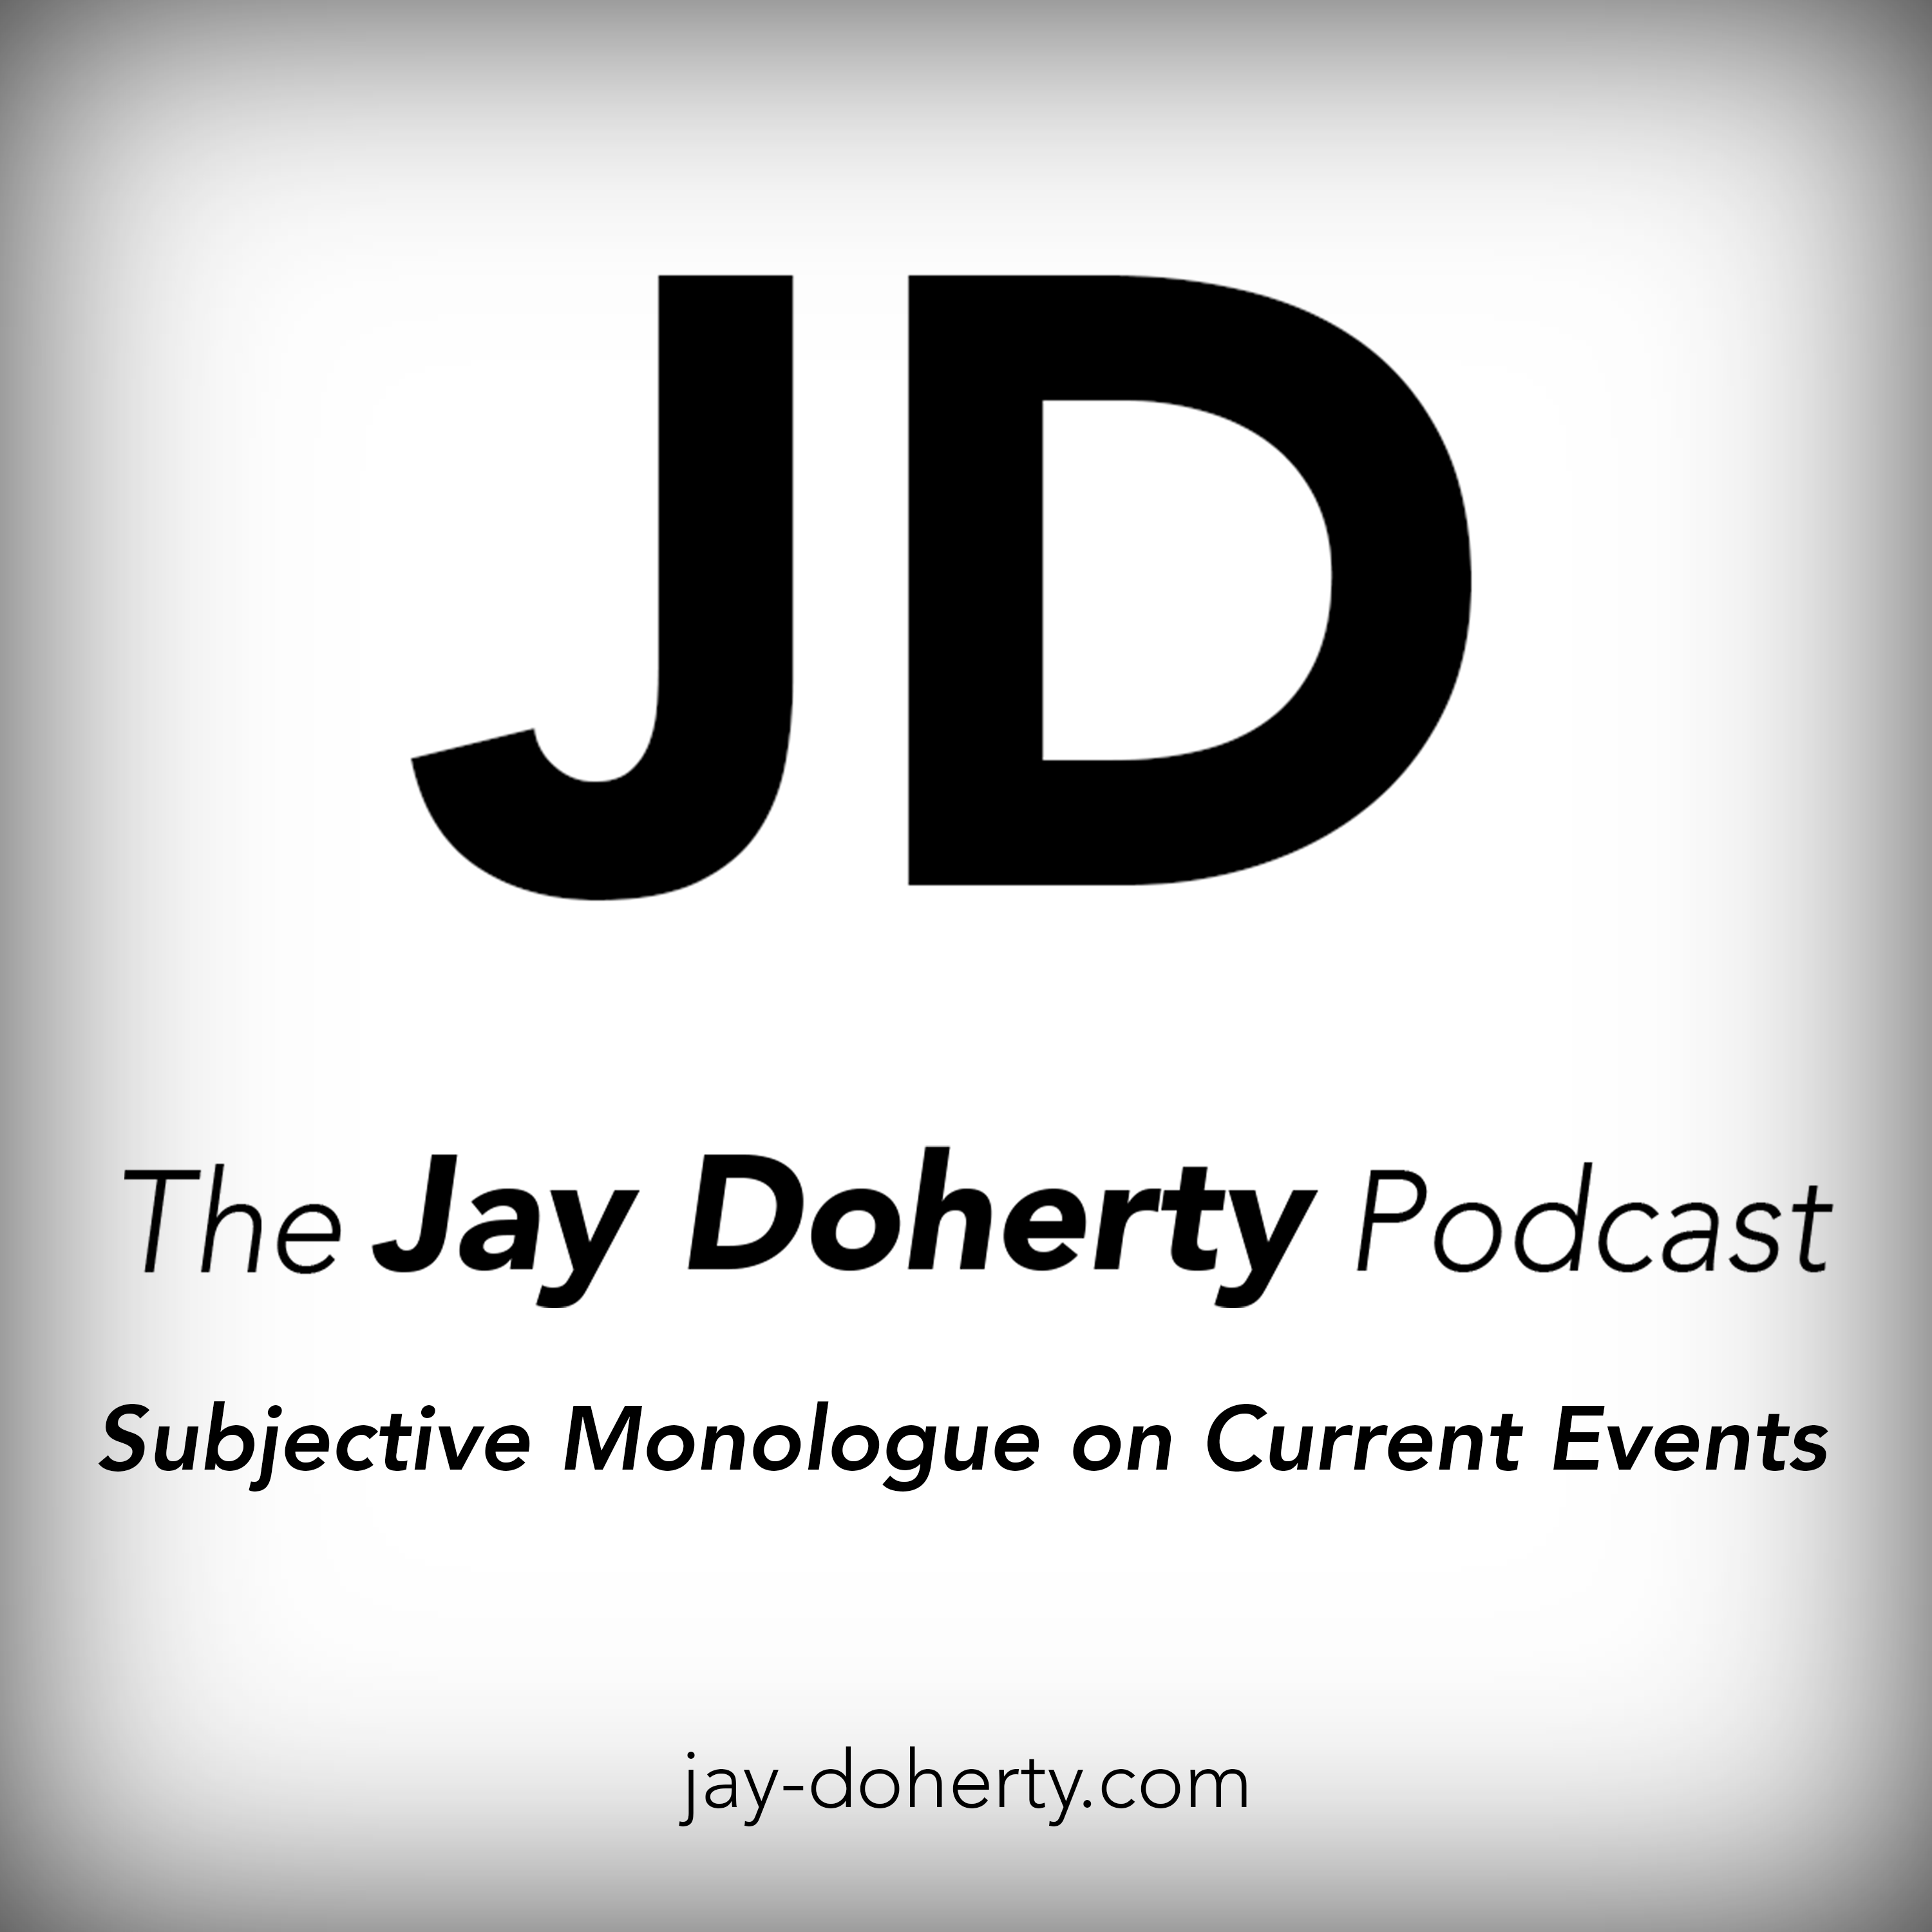 The Jay Doherty Podcast | Subjective Monologue on Current Events | A Politically Independent Talk-Podcast From Chicago